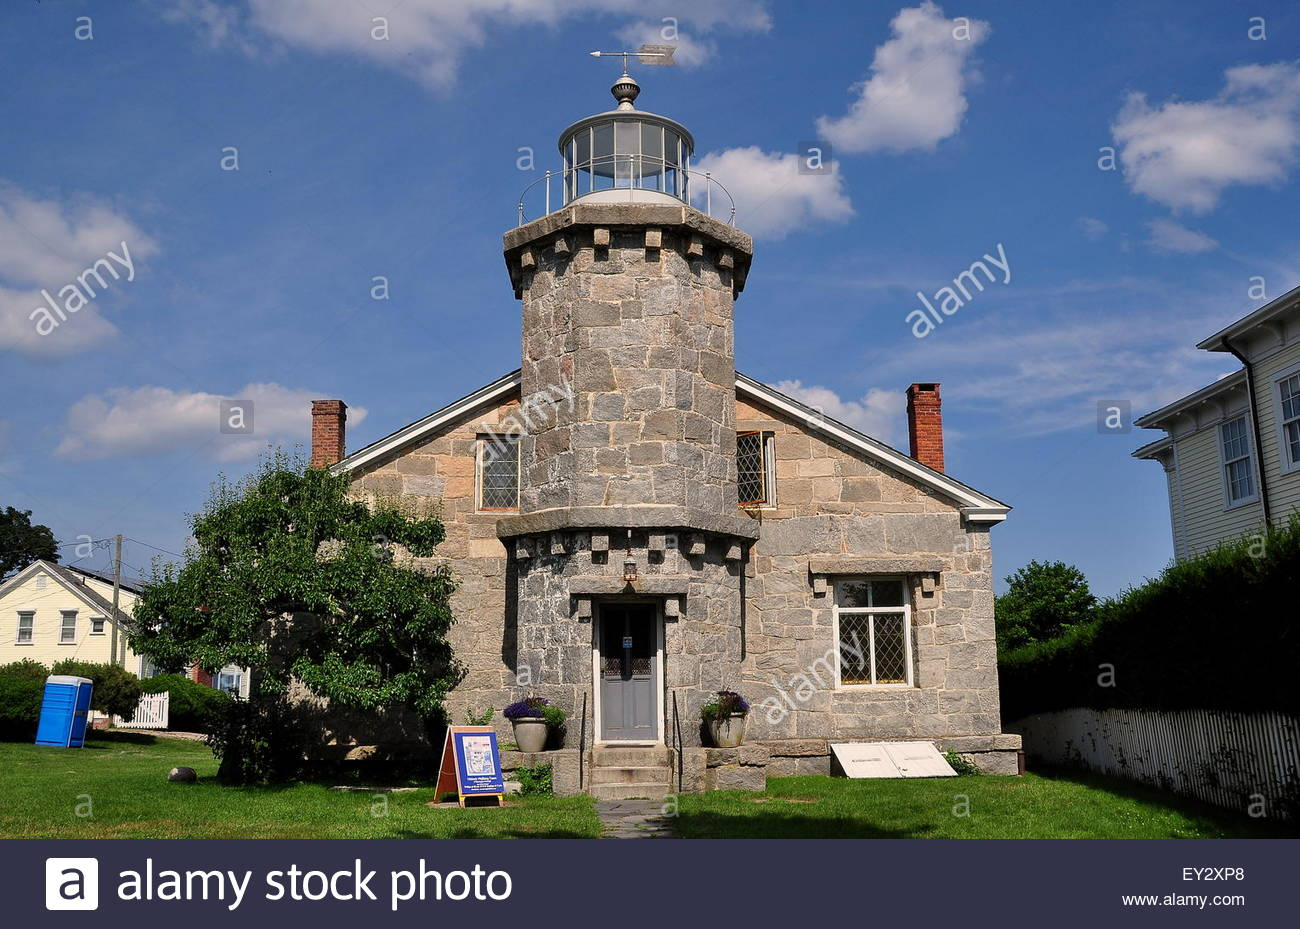 Stowe Craft Gallery & Design Center Stowe, Stonington, Connecticut: The 1840 solid granite Old Lighthouse ...